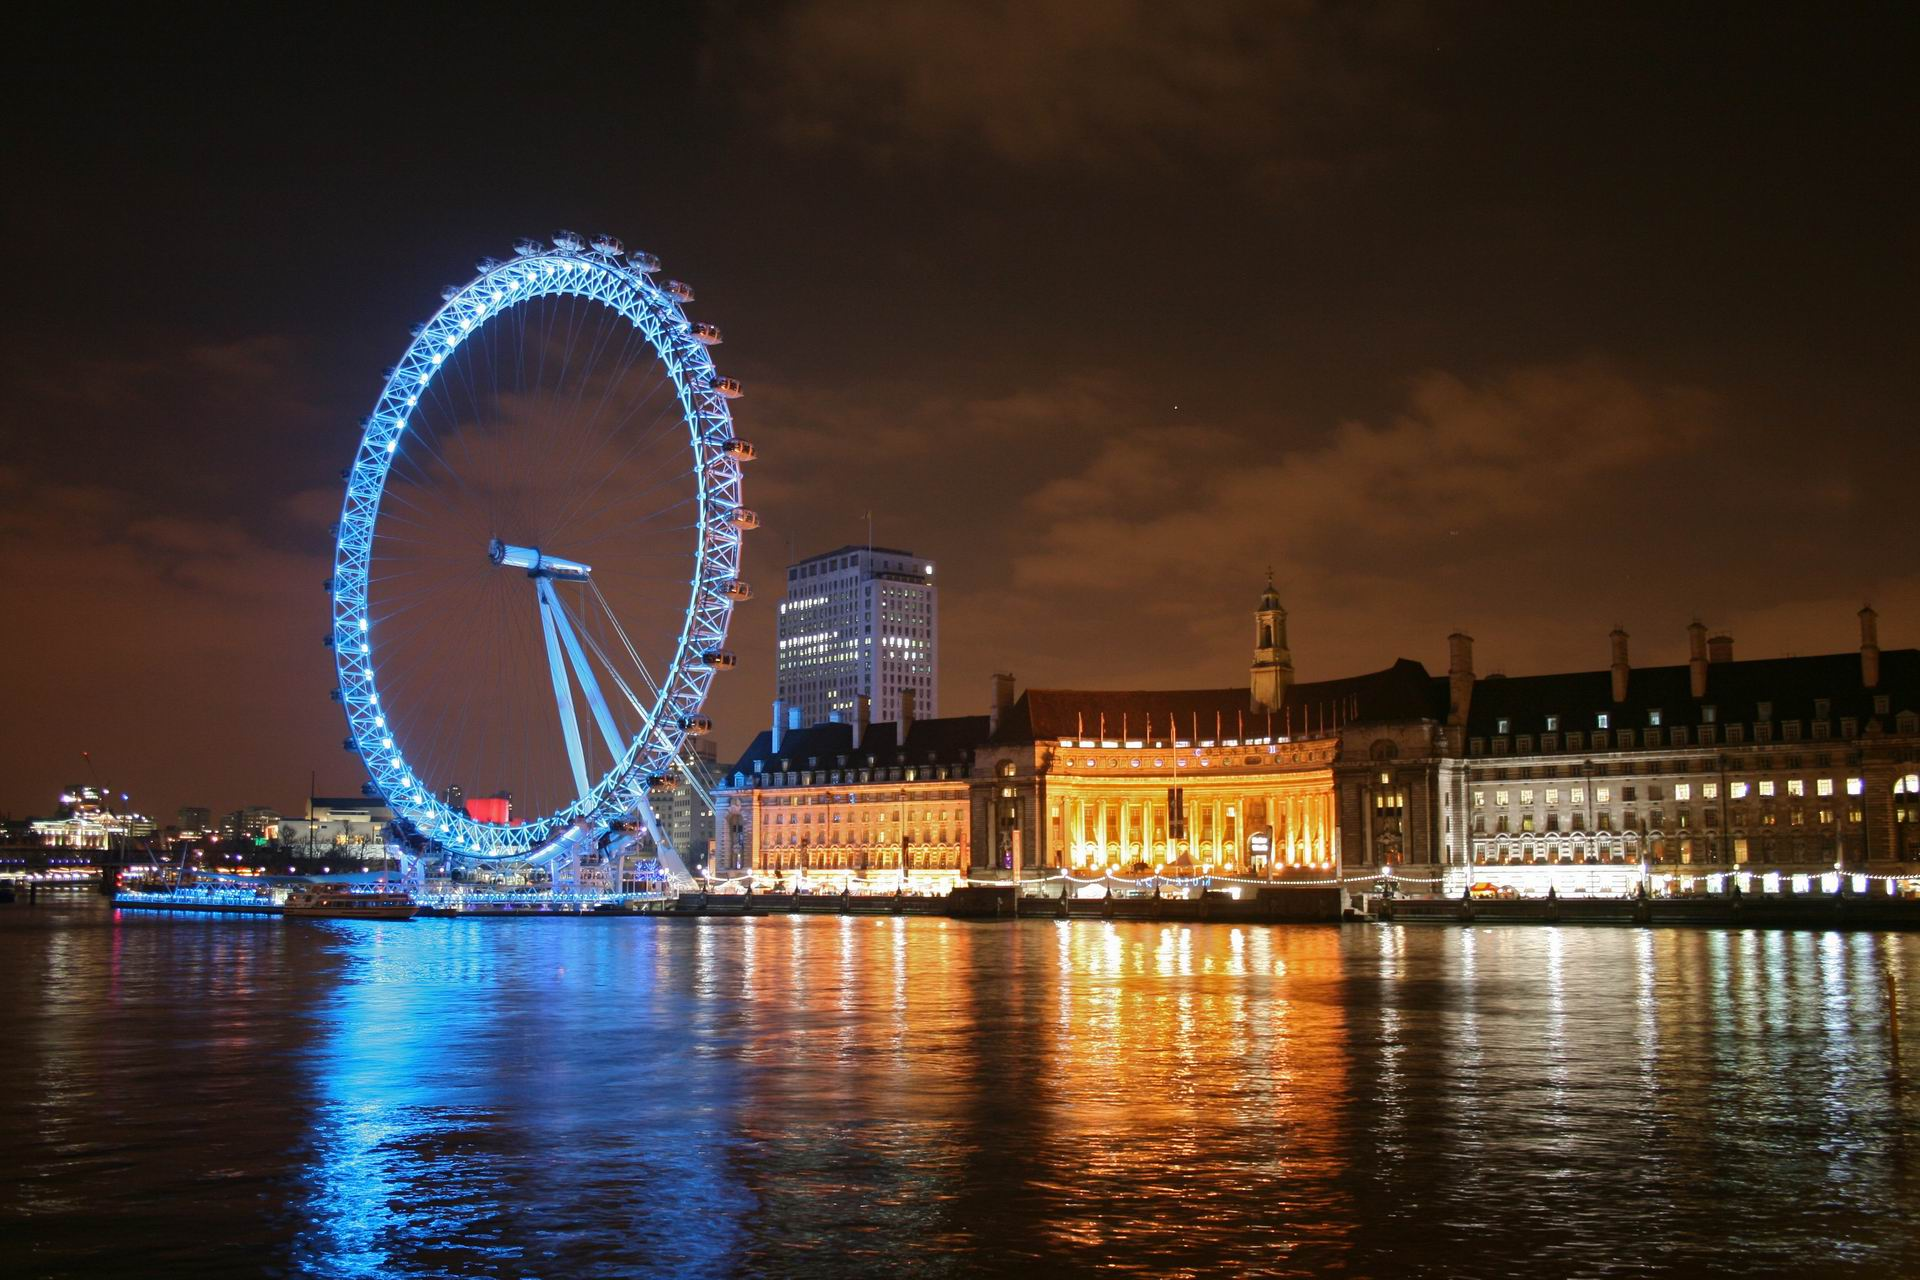 London Eye England Wallpaper   Travel HD Wallpapers 1920x1280